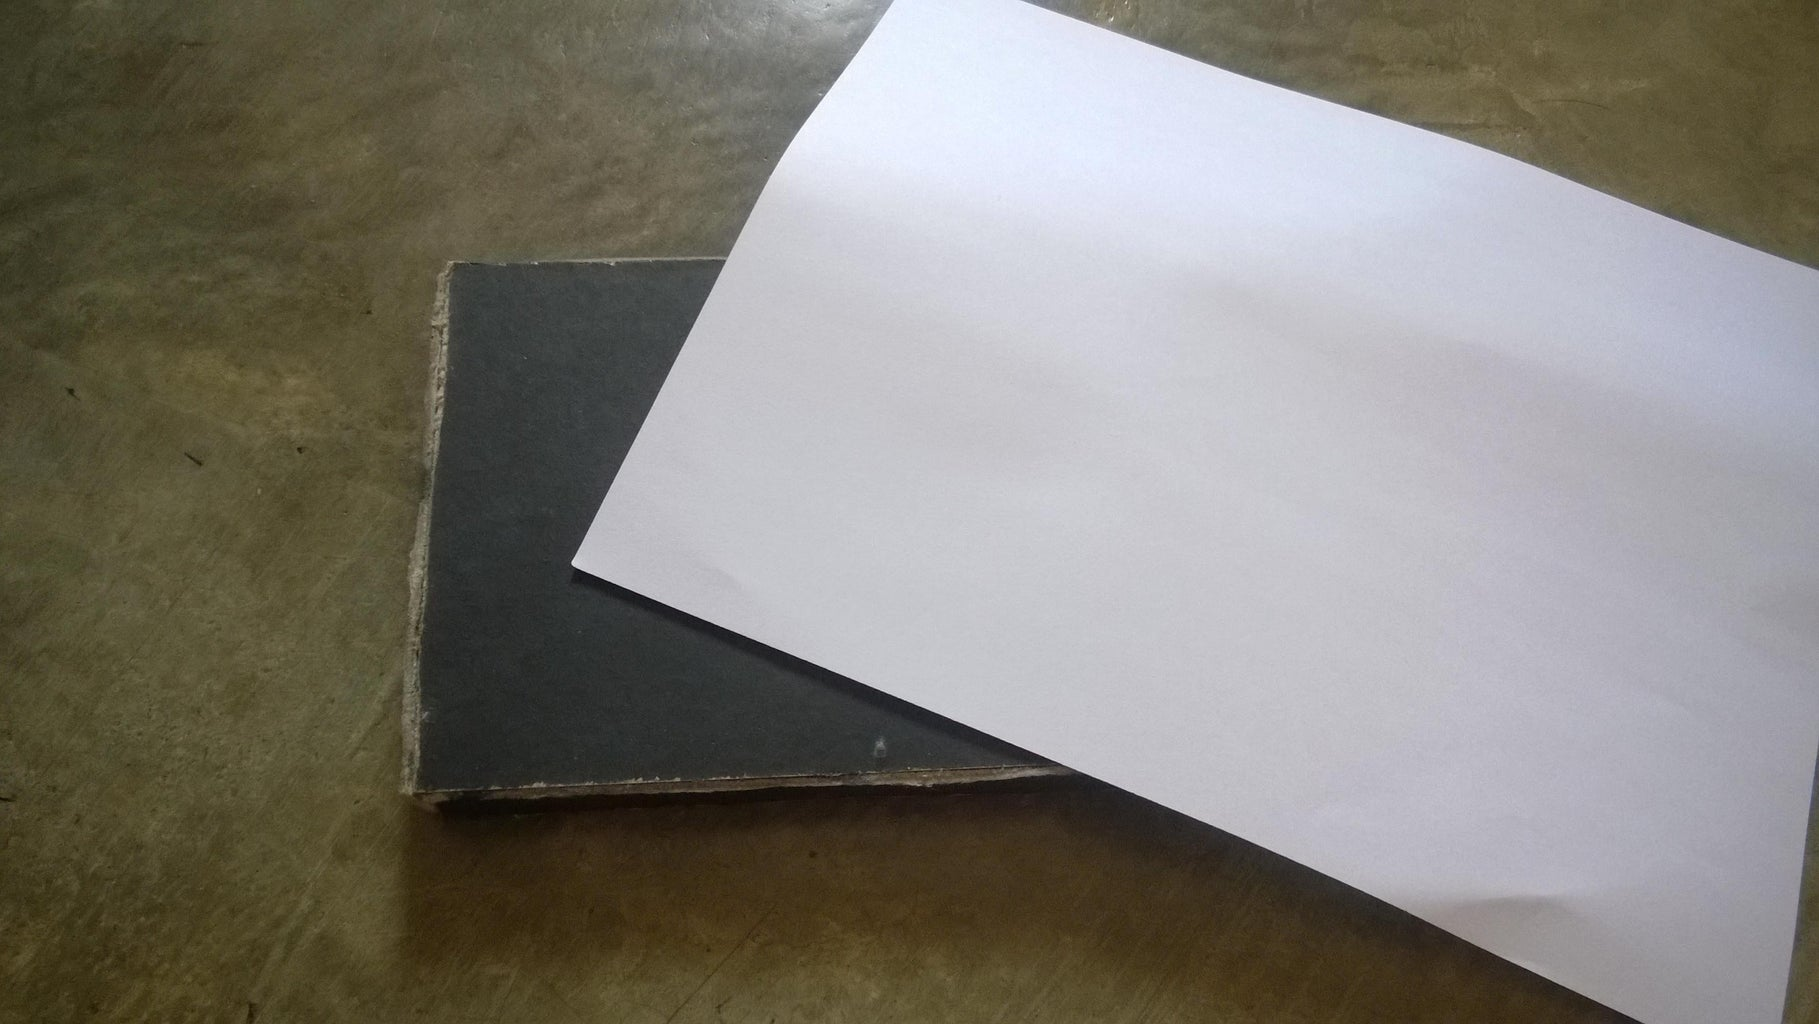 Cover the Wood With White Paper